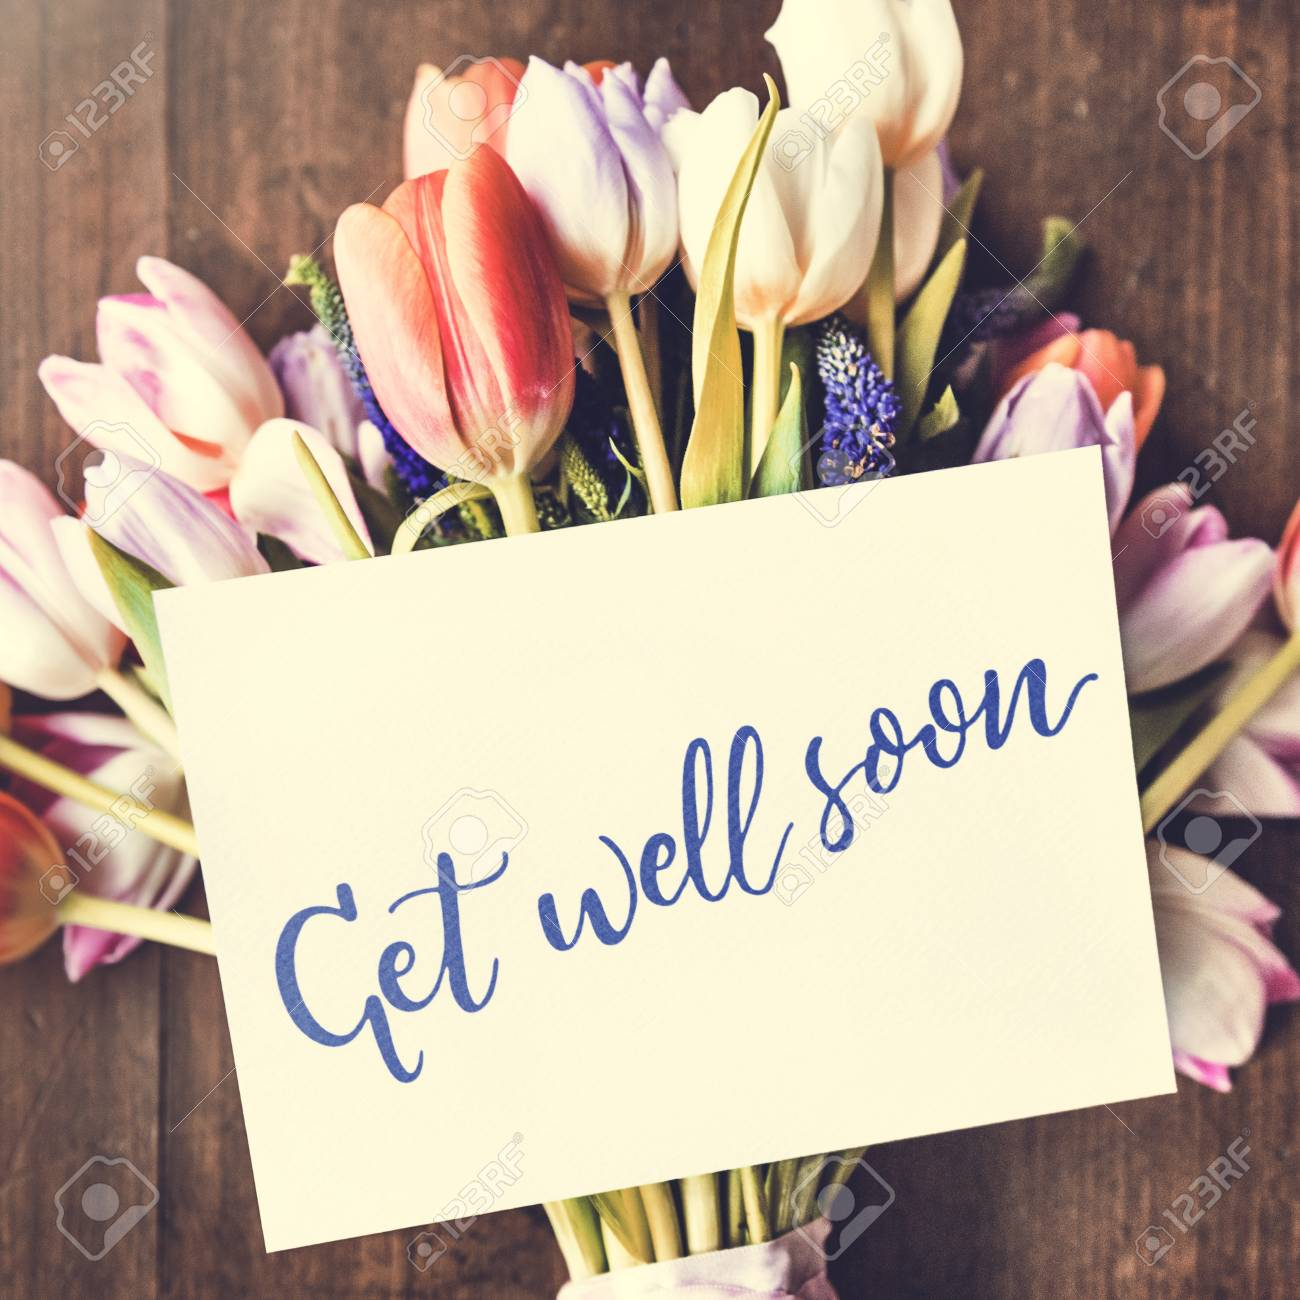 Tulips Flowers Bouquet With Get Well Soon Wishing Card Stock Photo Picture And Royalty Free Image Image 79906447